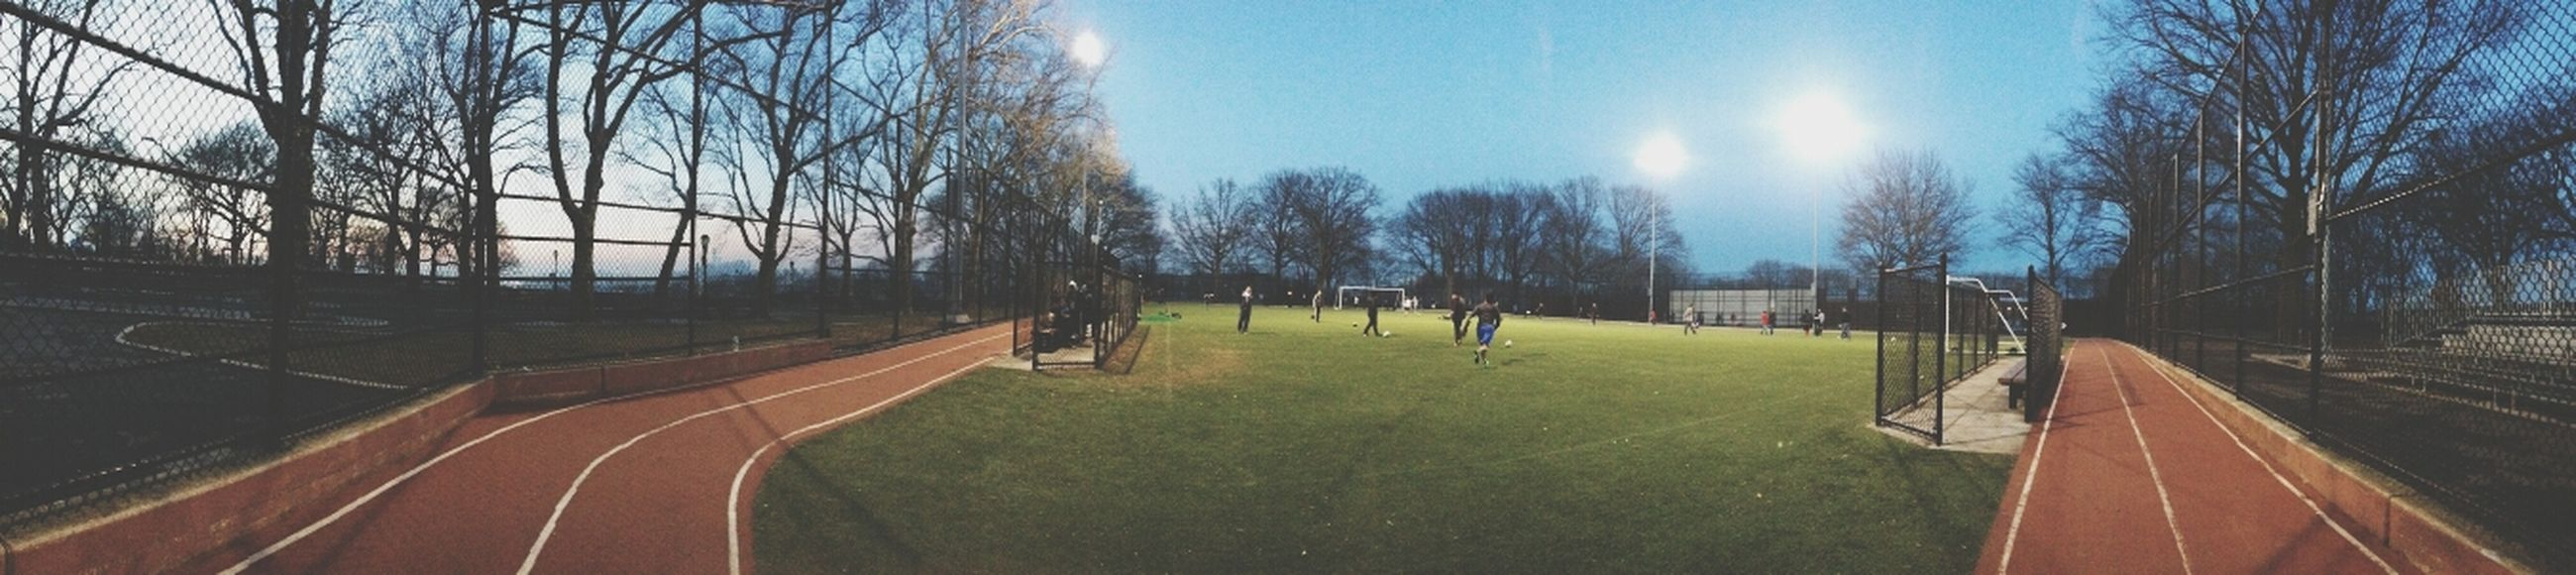 Brooklyn Sunset Park :) well, this is life for now xD HAHA pracrixcing softball everyday in this feild with lots of people too xD its o.d fun.